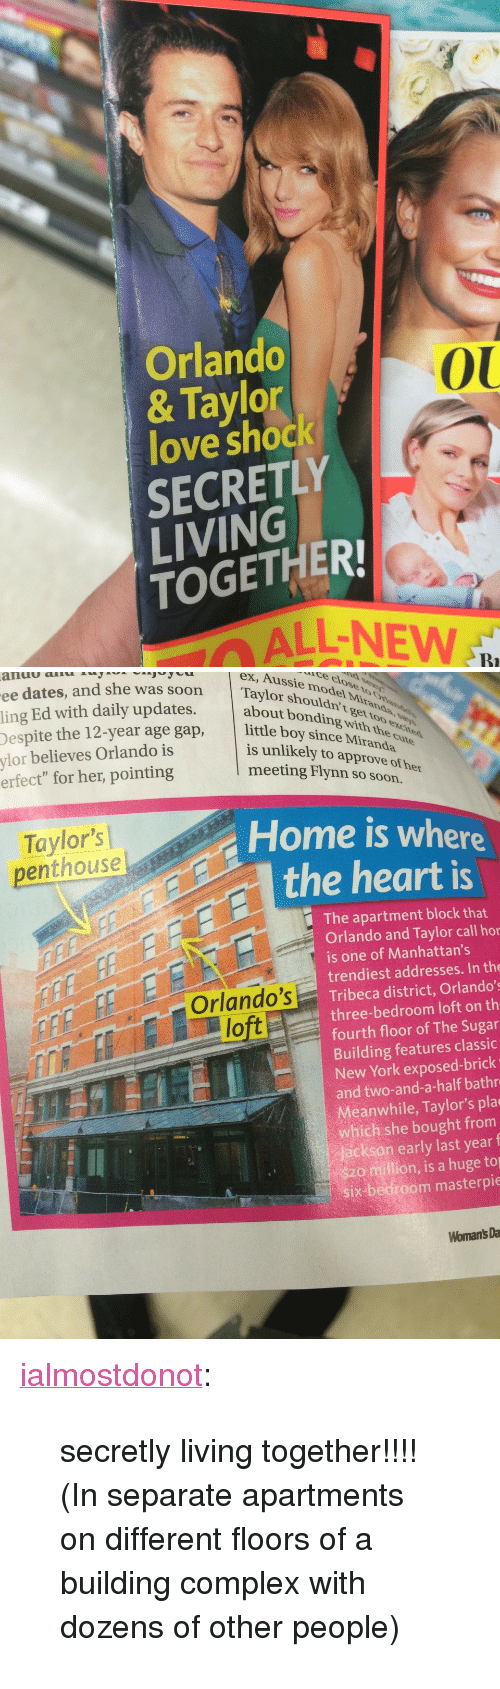 "where the heart is: Orlando  & Taylor  love shock  SECRETLY  LIVING  TOGETHER  0U  ALL-NEW  Bi   ex, Aussie model Mira  about bonding with  is unlikely to approve of her  te dlose  ee dates, and she was soon  ling Ed with daily updates.ushouldu  espite the 12-year age gap, little boy sinnt  Despite t  ylor believes Orlando is  erfect"" for her, pointing  meeting Flynn so soon.  Taylor's  penthouse  Home is where  the heart is  The apartment block that  Orlando and Taylor call hor  is one of Manhattan's  trendiest addresses. In the  Orlando's Tribeca district, Orlando's  three-bedroom loft on th  fourth floor of The Sugar  Building features classic  New York exposed-brick  and two-and-a-half bathr  Meanwhile, Taylor's pla  which she bought from  jackson early last year f  $20 million, is a huge to  six-bedroom masterpie  lo  Womant's Da <p><a class=""tumblr_blog"" href=""http://ialmostdonot.tumblr.com/post/107255852222/secretly-living-together-in-separate"" target=""_blank"">ialmostdonot</a>:</p> <blockquote> <p>secretly living together!!!! (In separate apartments on different floors of a building complex with dozens of other people)</p> </blockquote>"